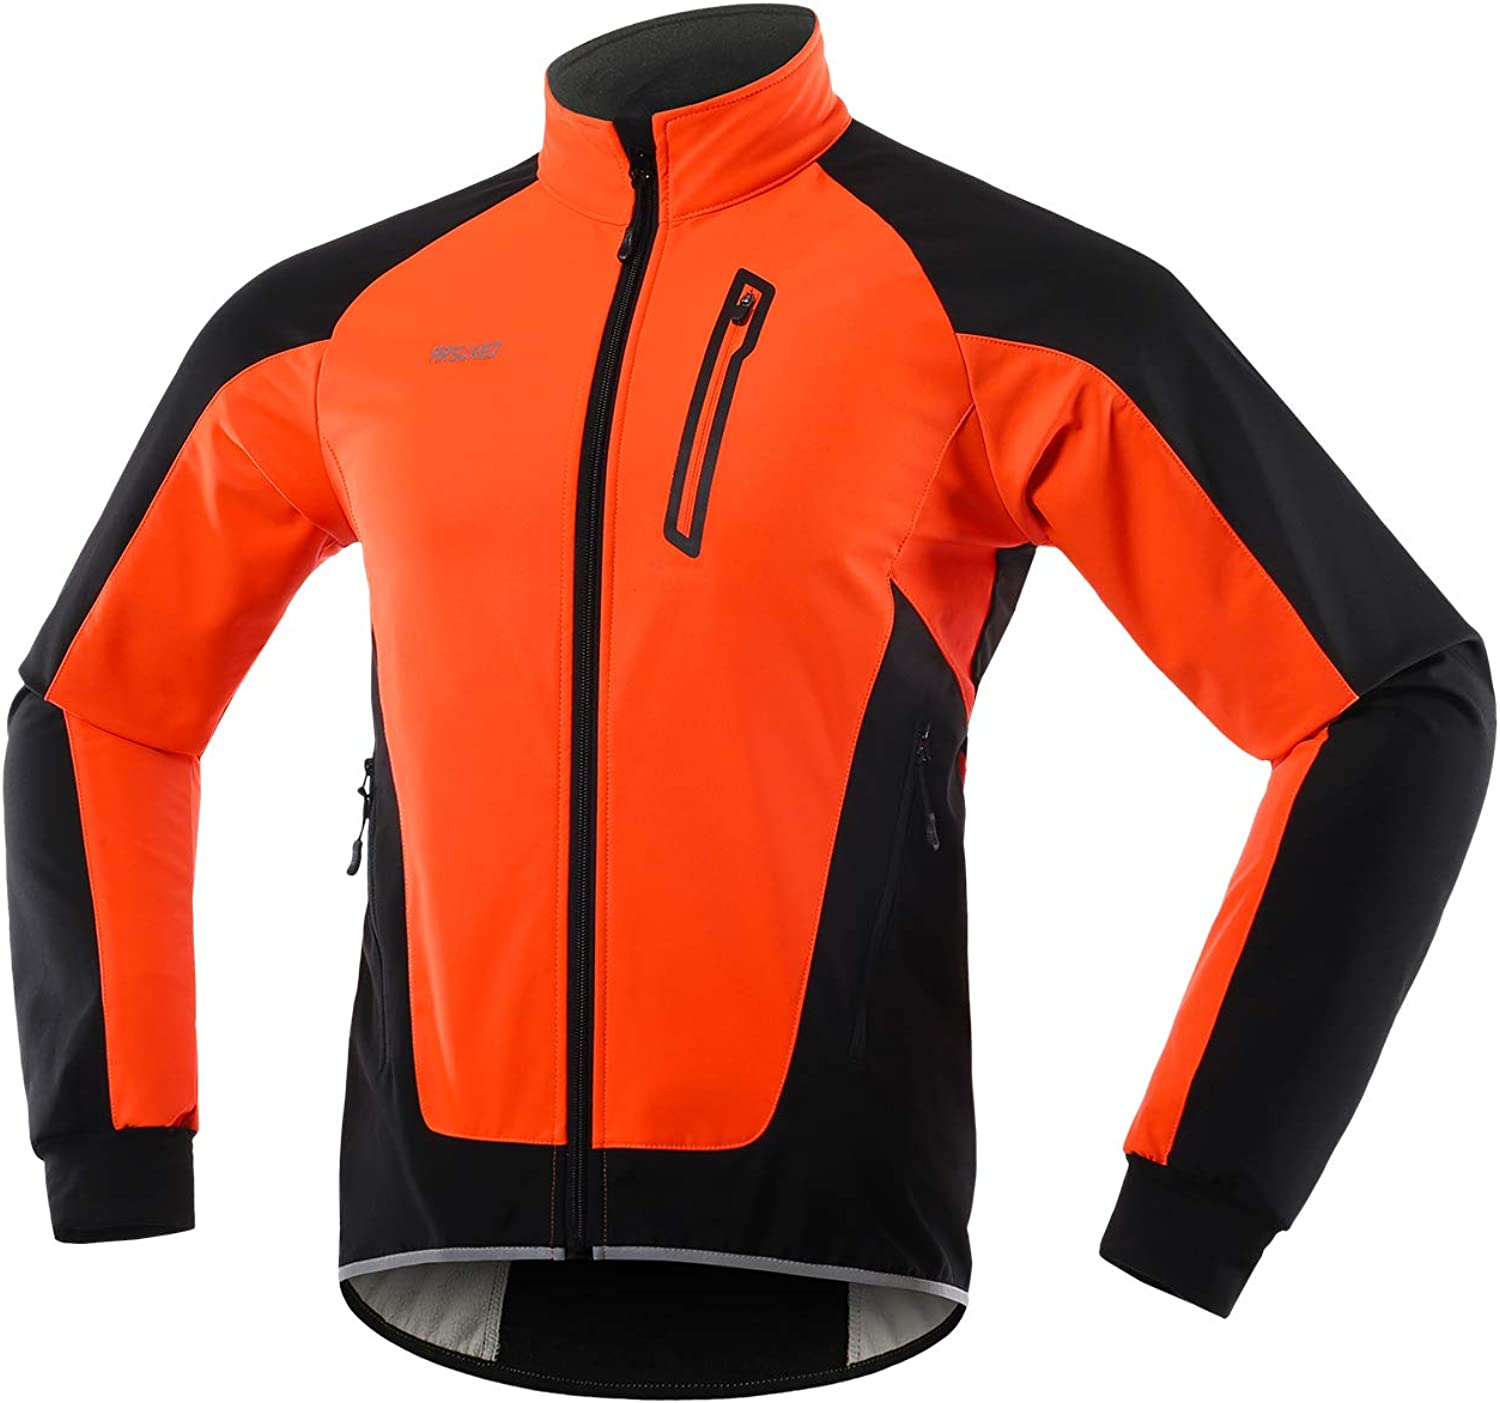 ARSUXEO Men's Winter lowest price Cycling Jacket MTB Thermal Fleece Soldering Softshell